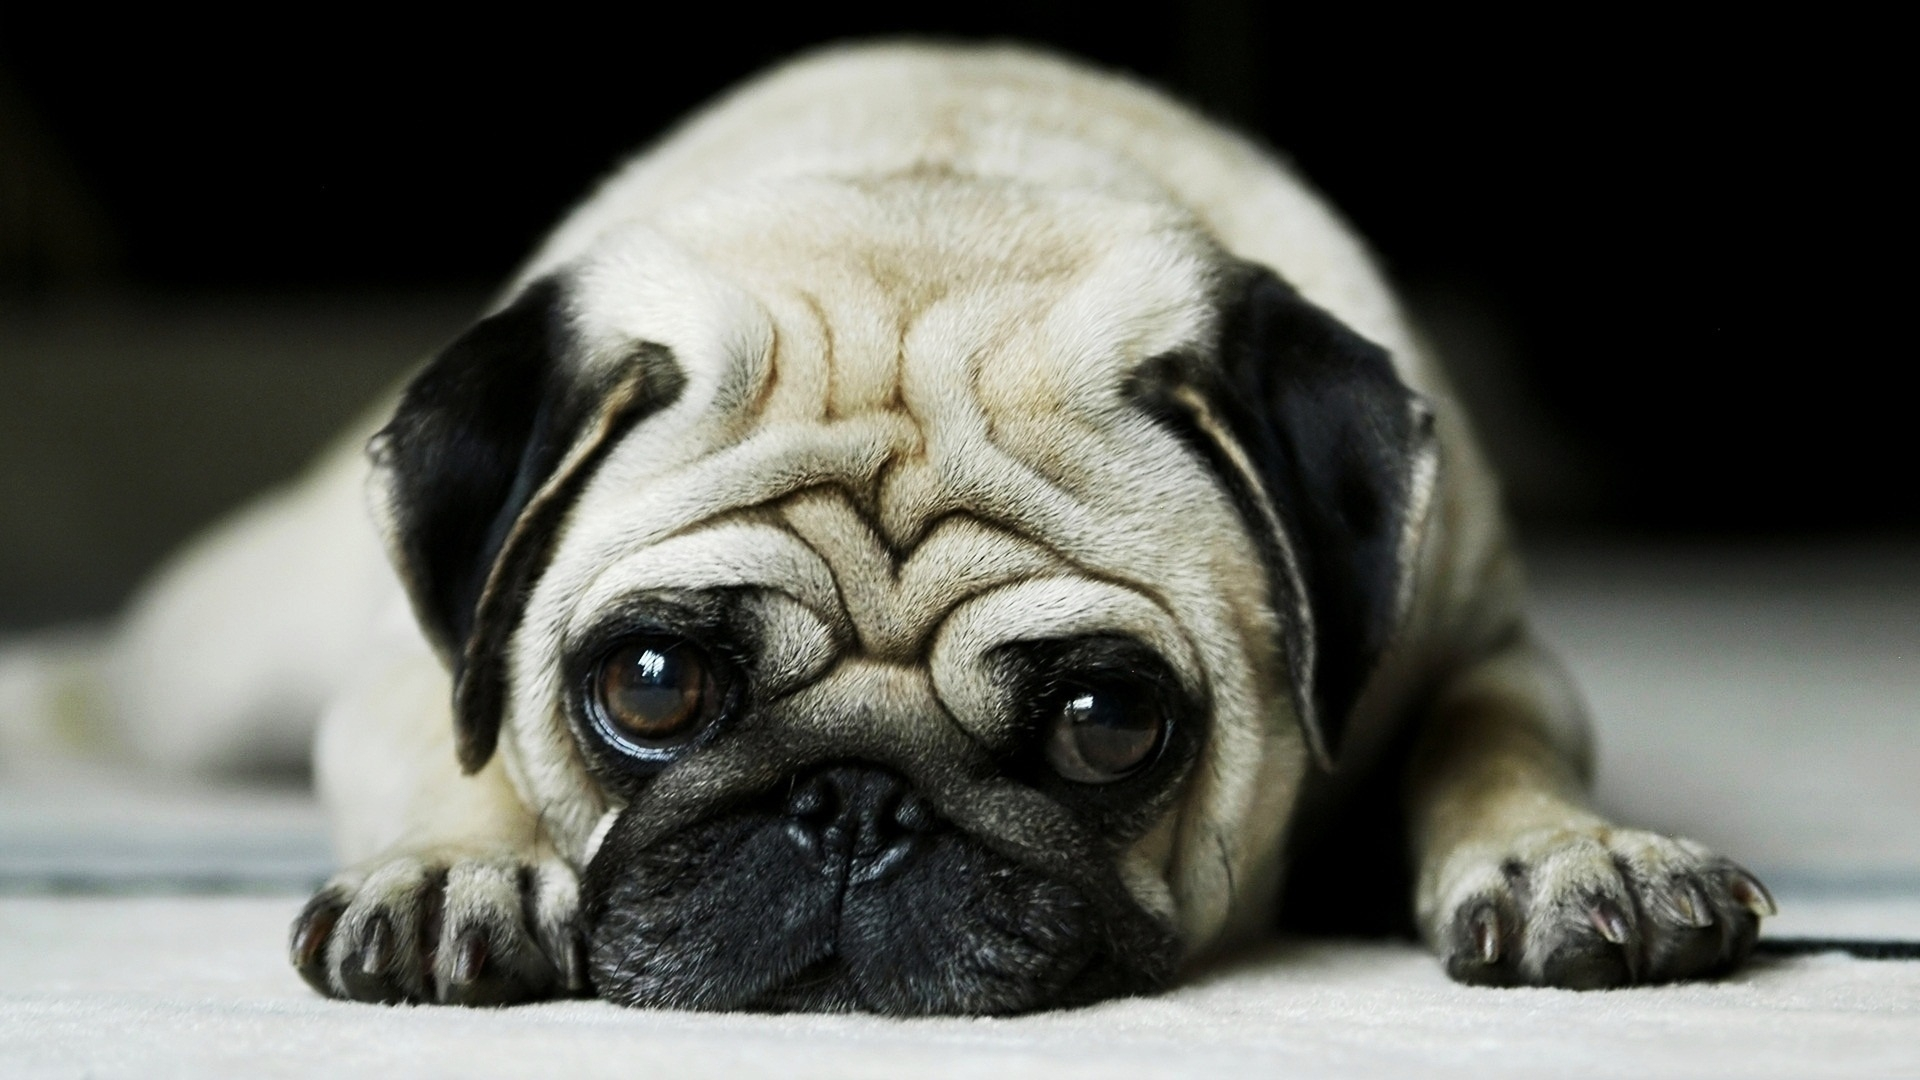 Cute-face-puppy-background-wallpaper-wp5604167